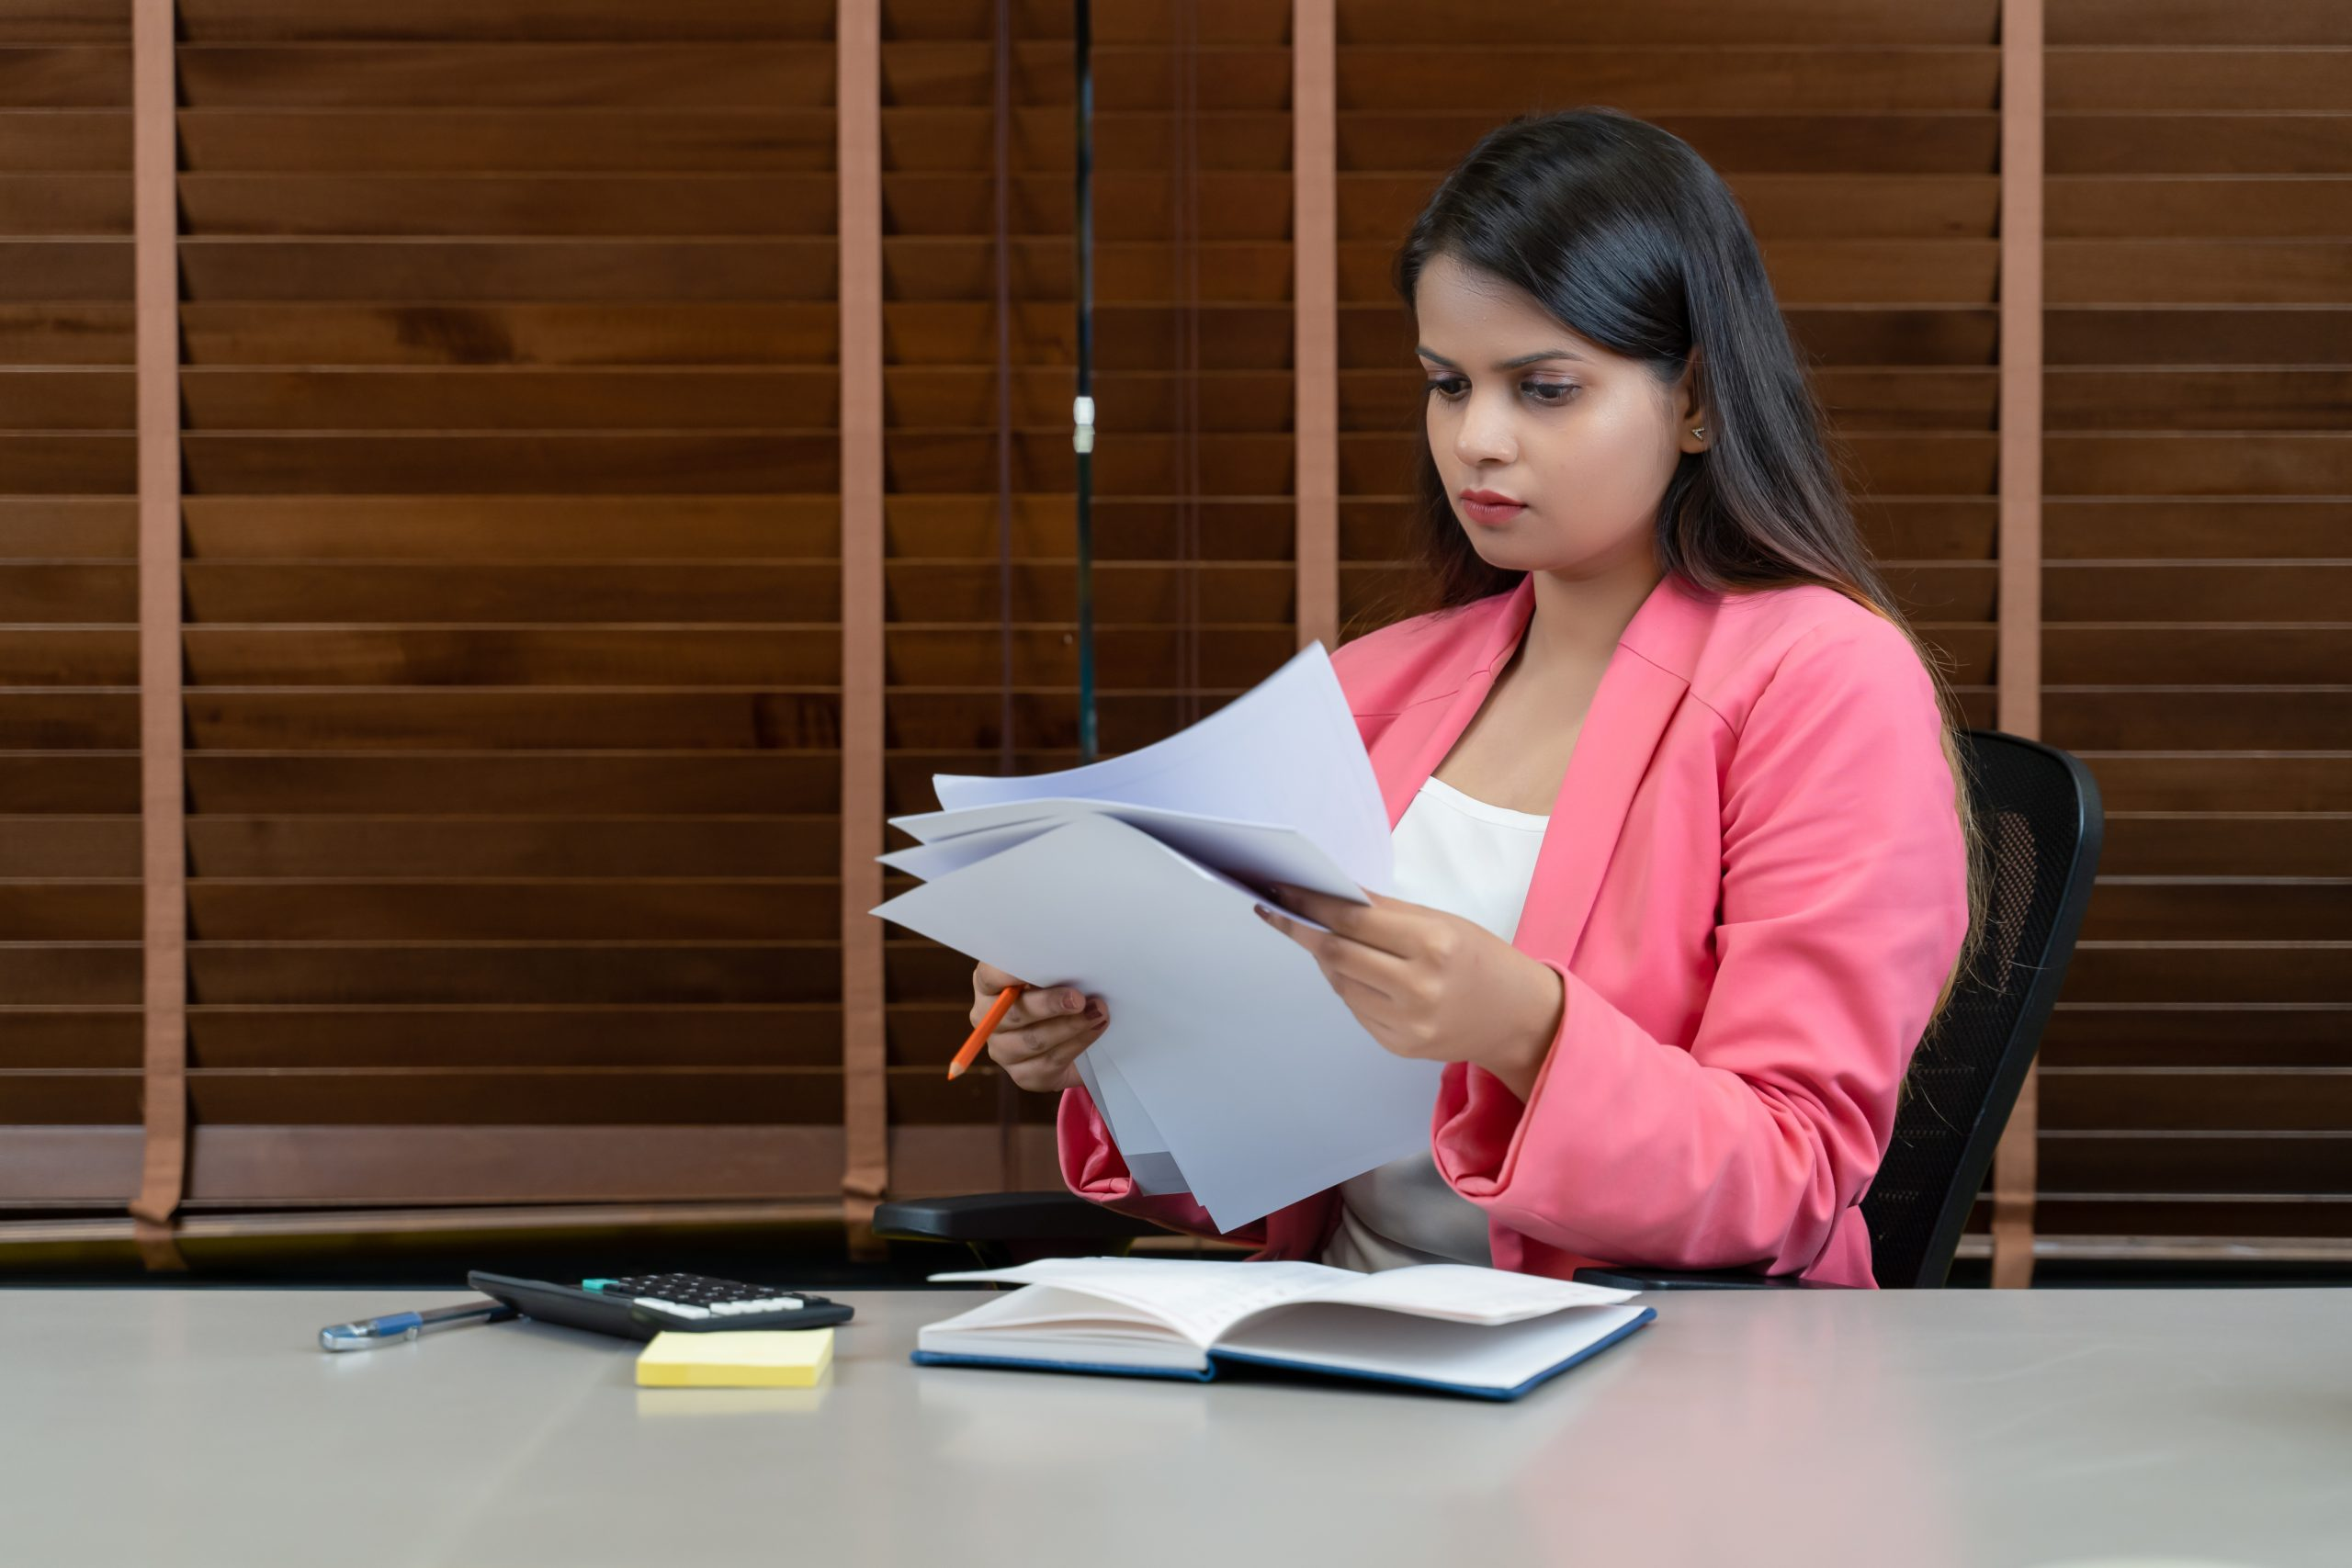 A girl seeing the business reports